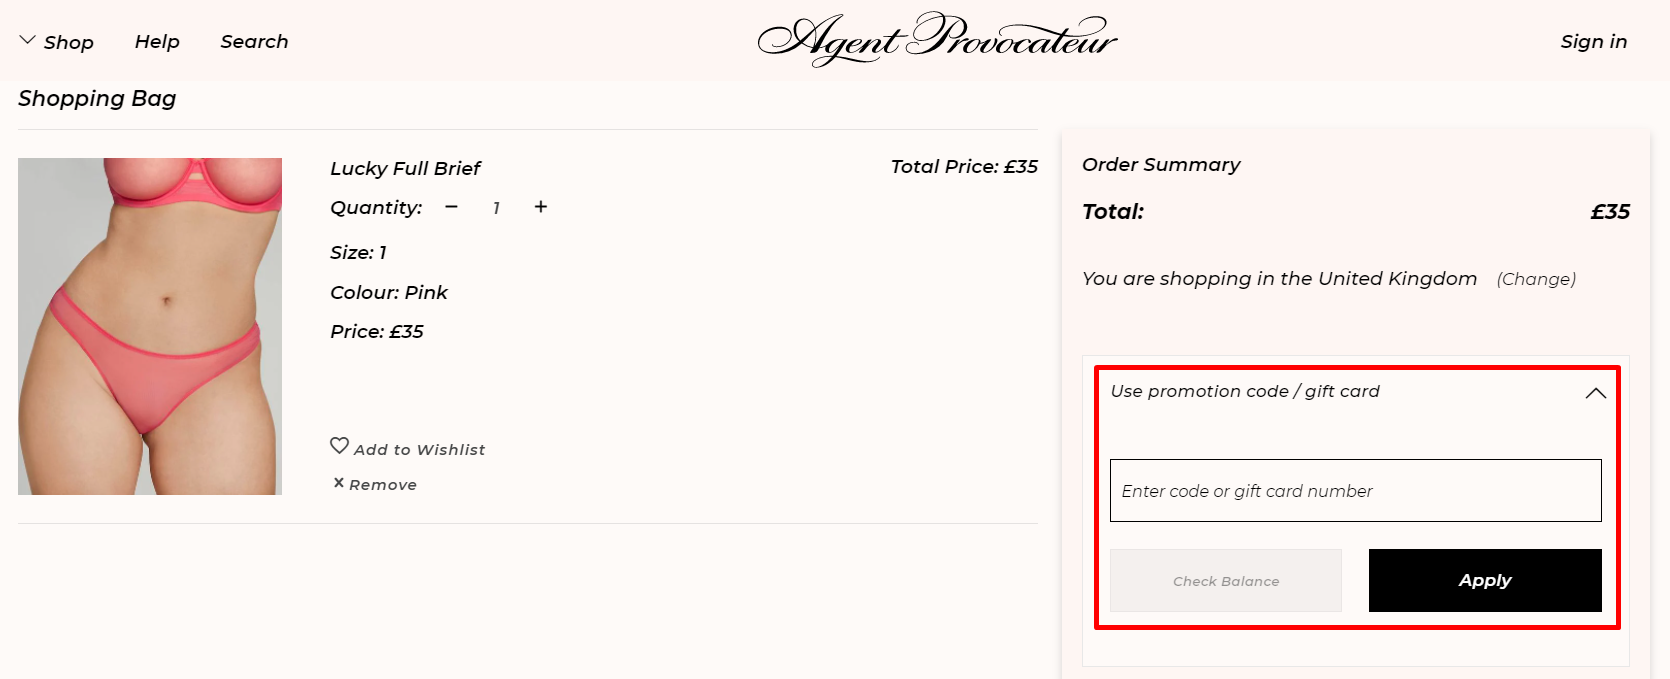 How do I use my Agent Provocateur promotion code?